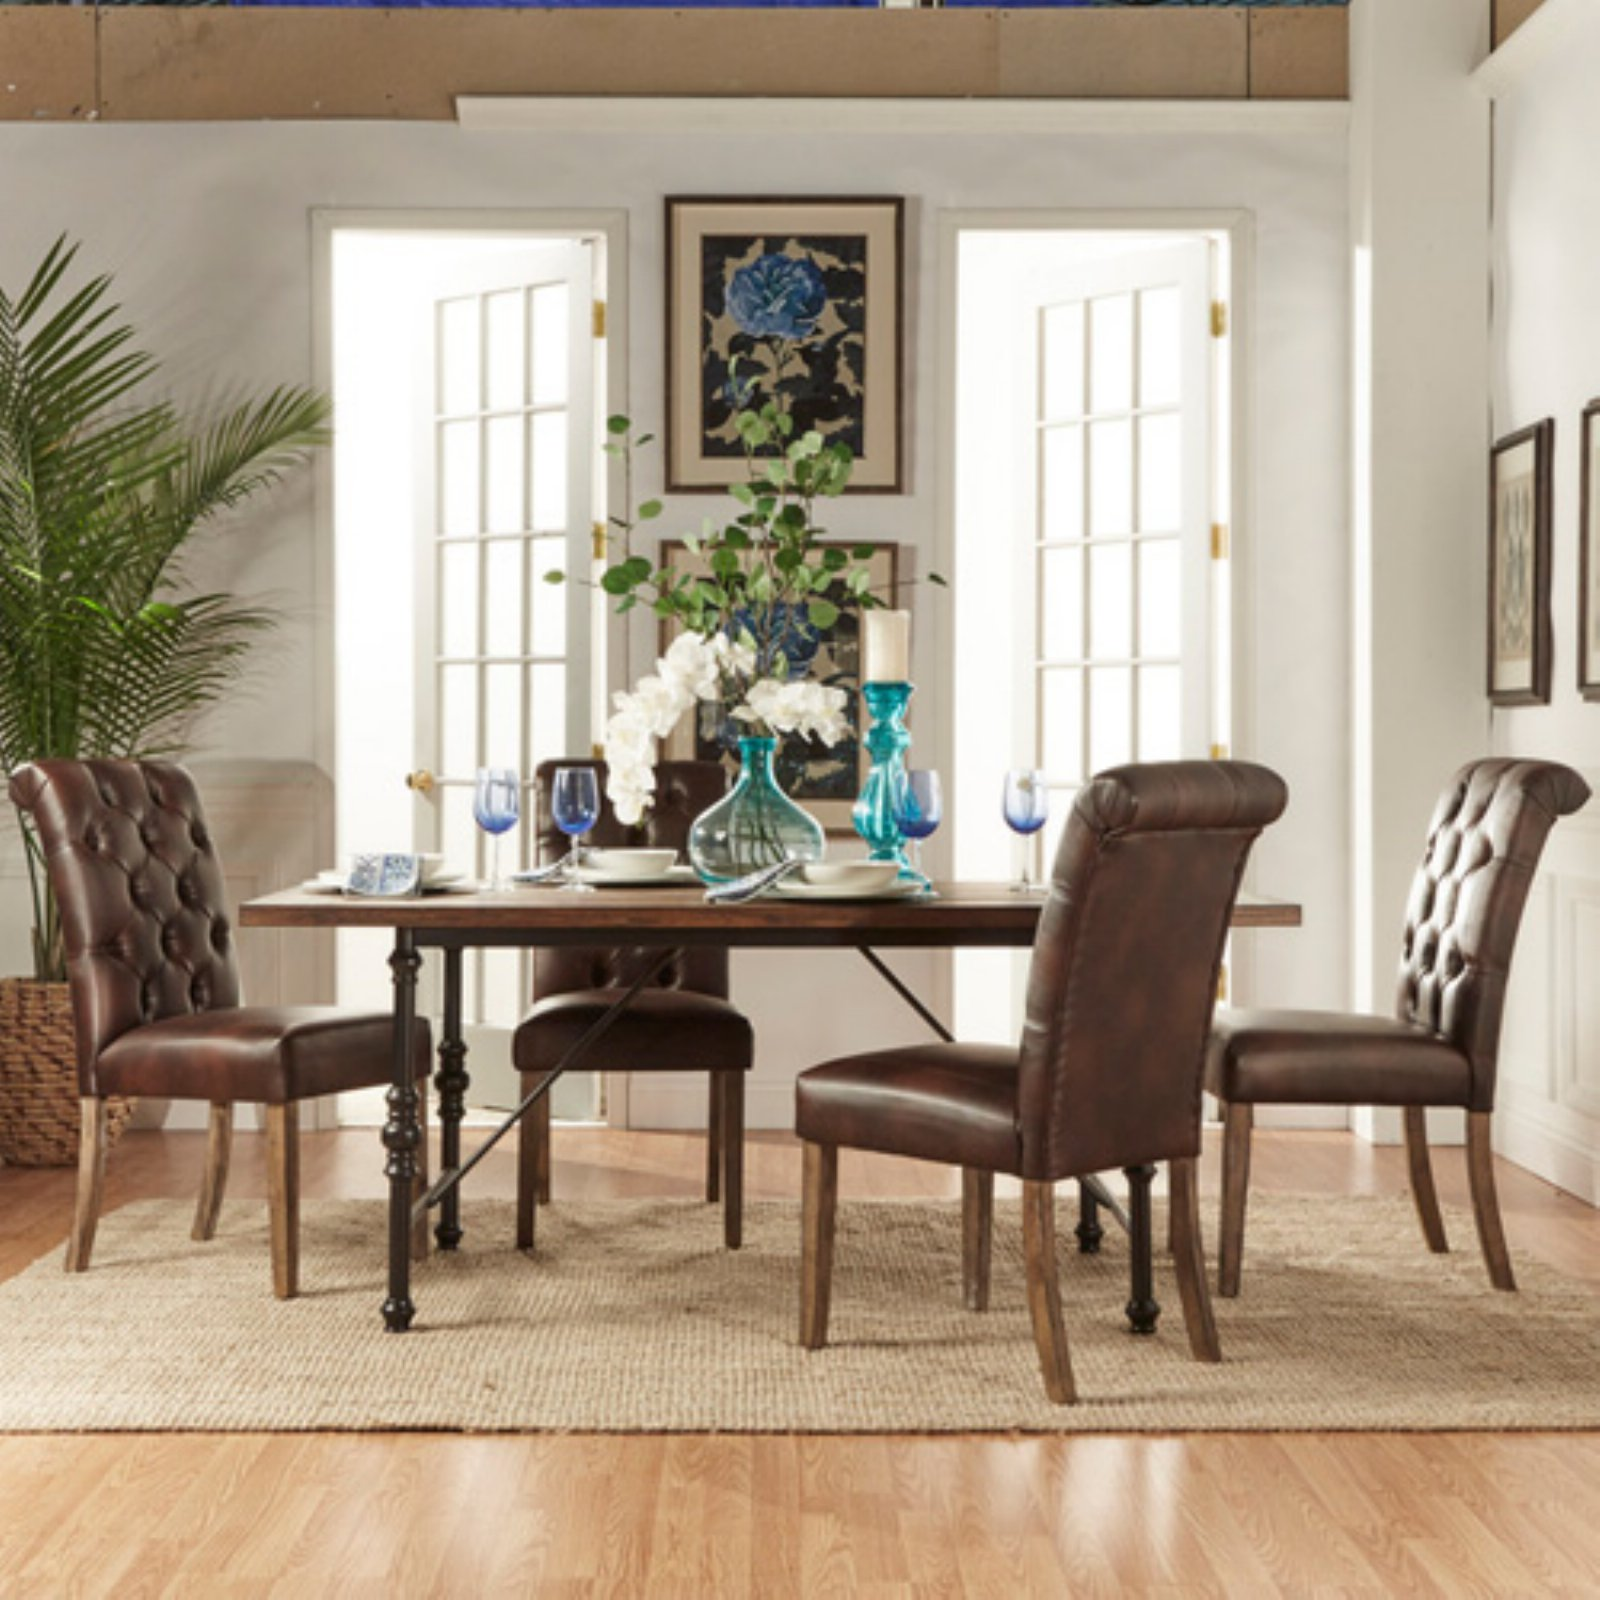 Weston Home 5 Piece Industrial Dining Set with Brown Tufted Chairs